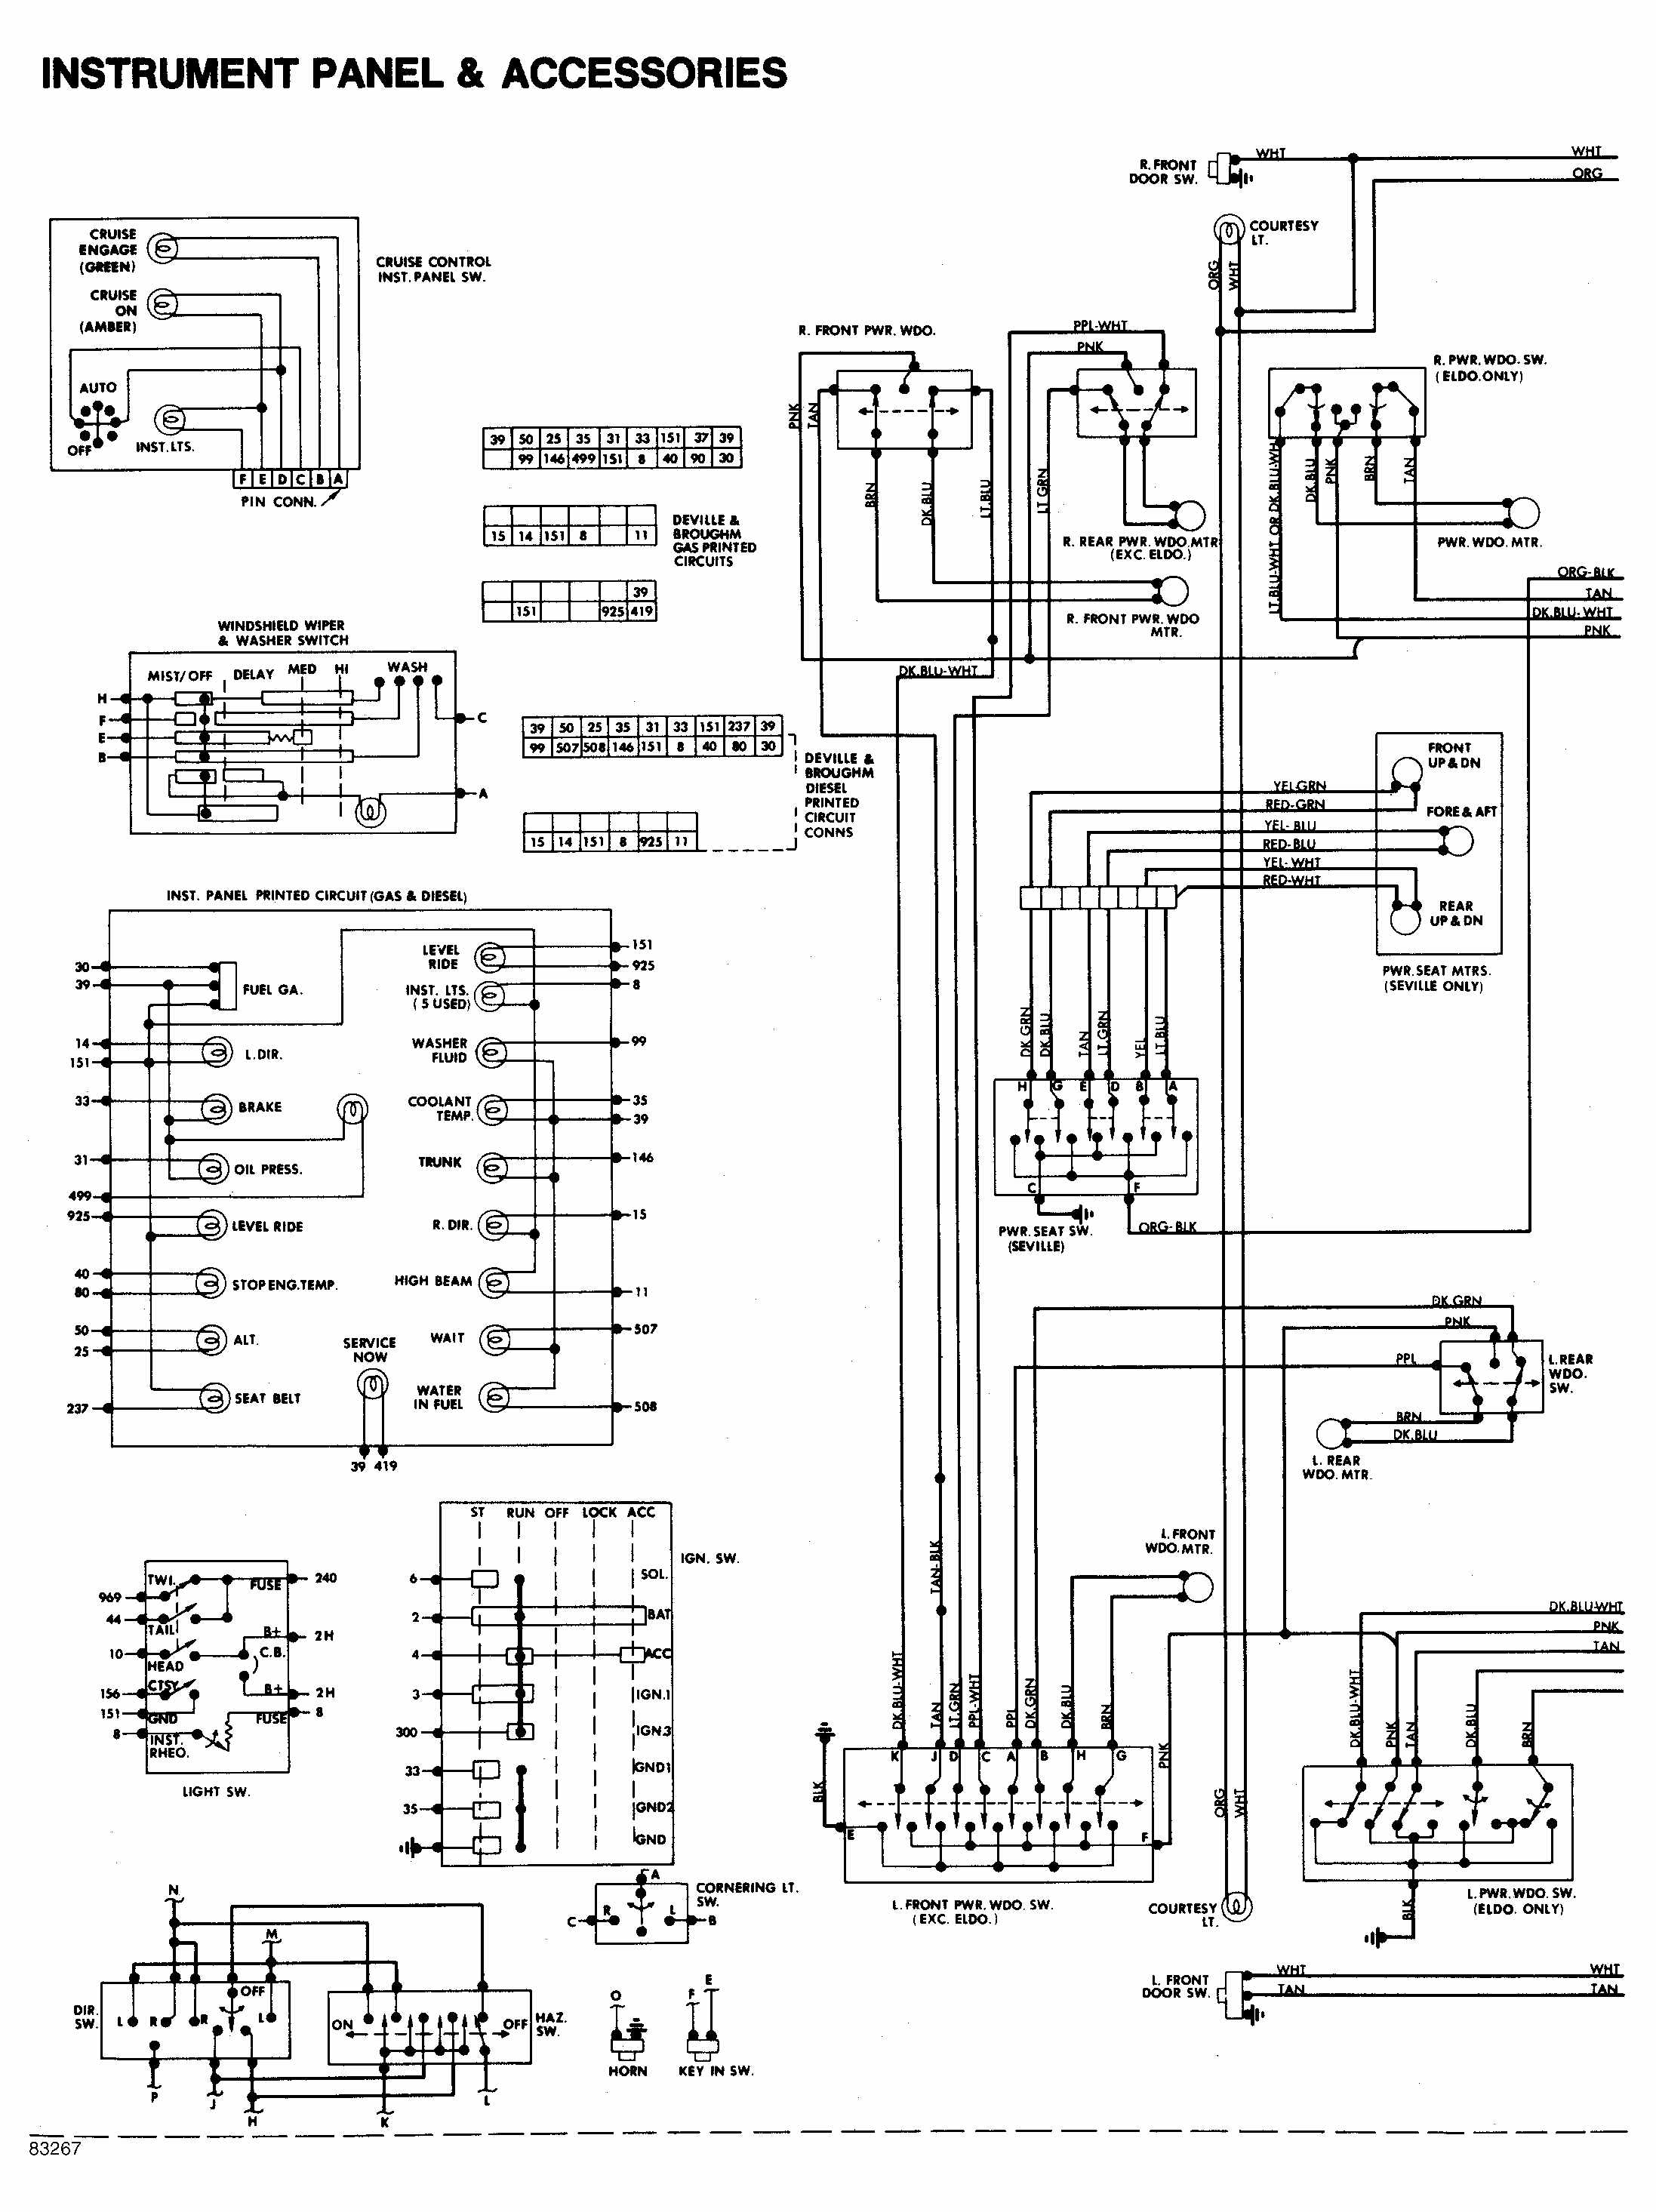 Wiring Diagram 2001 Cadillac Deville - Diagram Schematic Ideas on